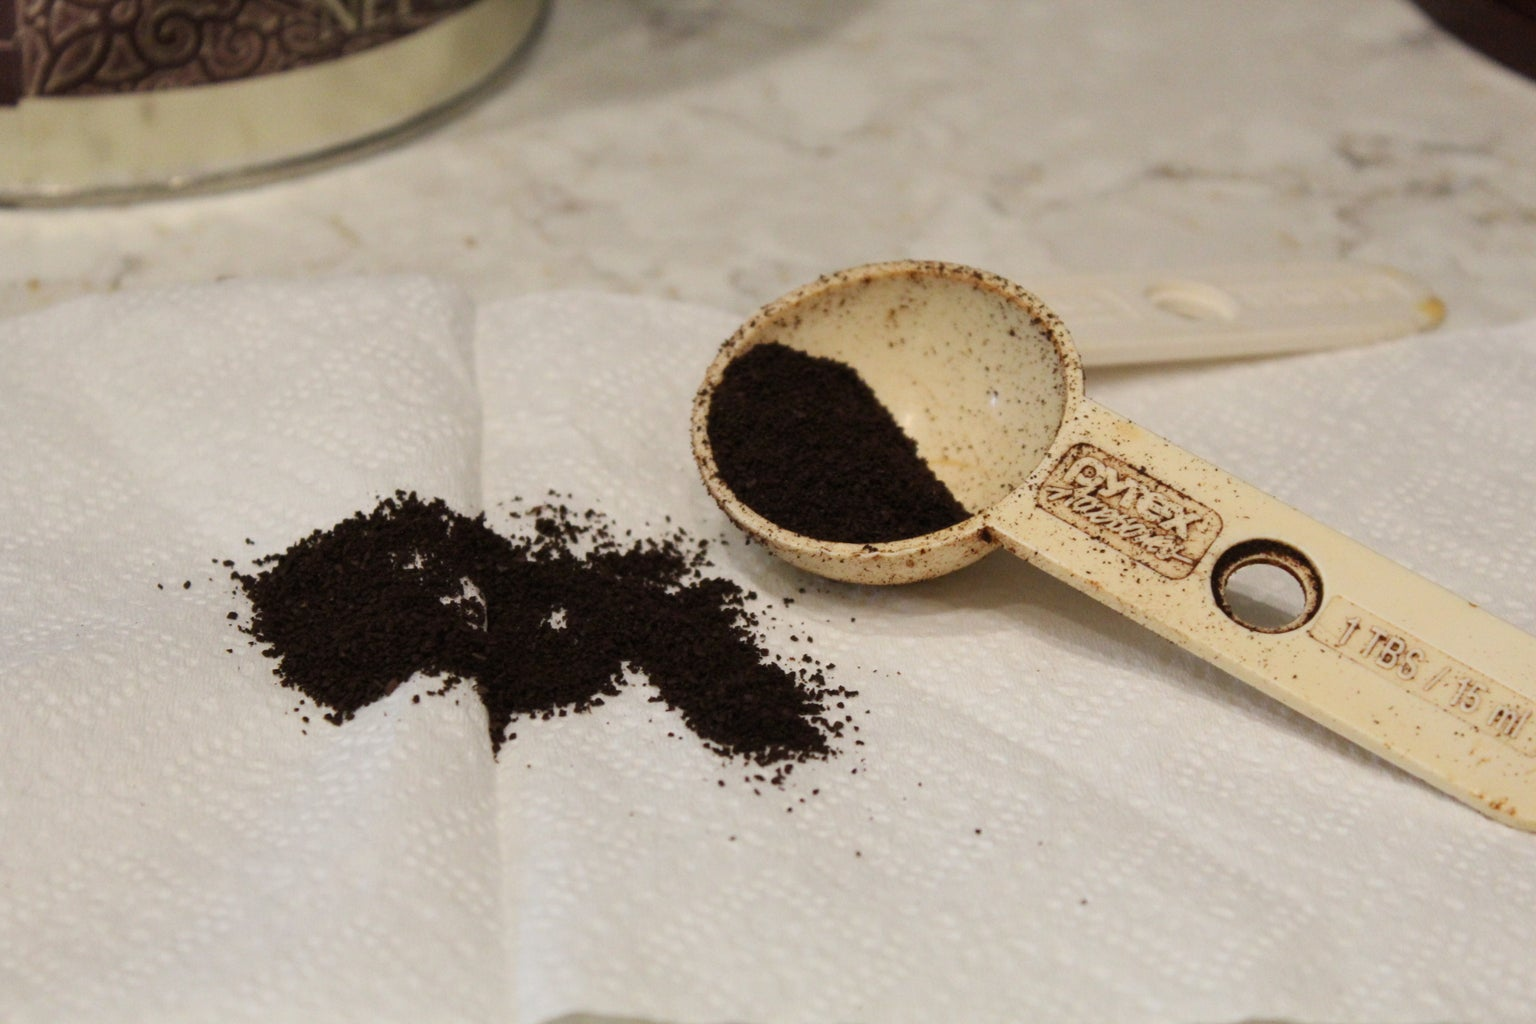 Add Instant Coffee Grounds